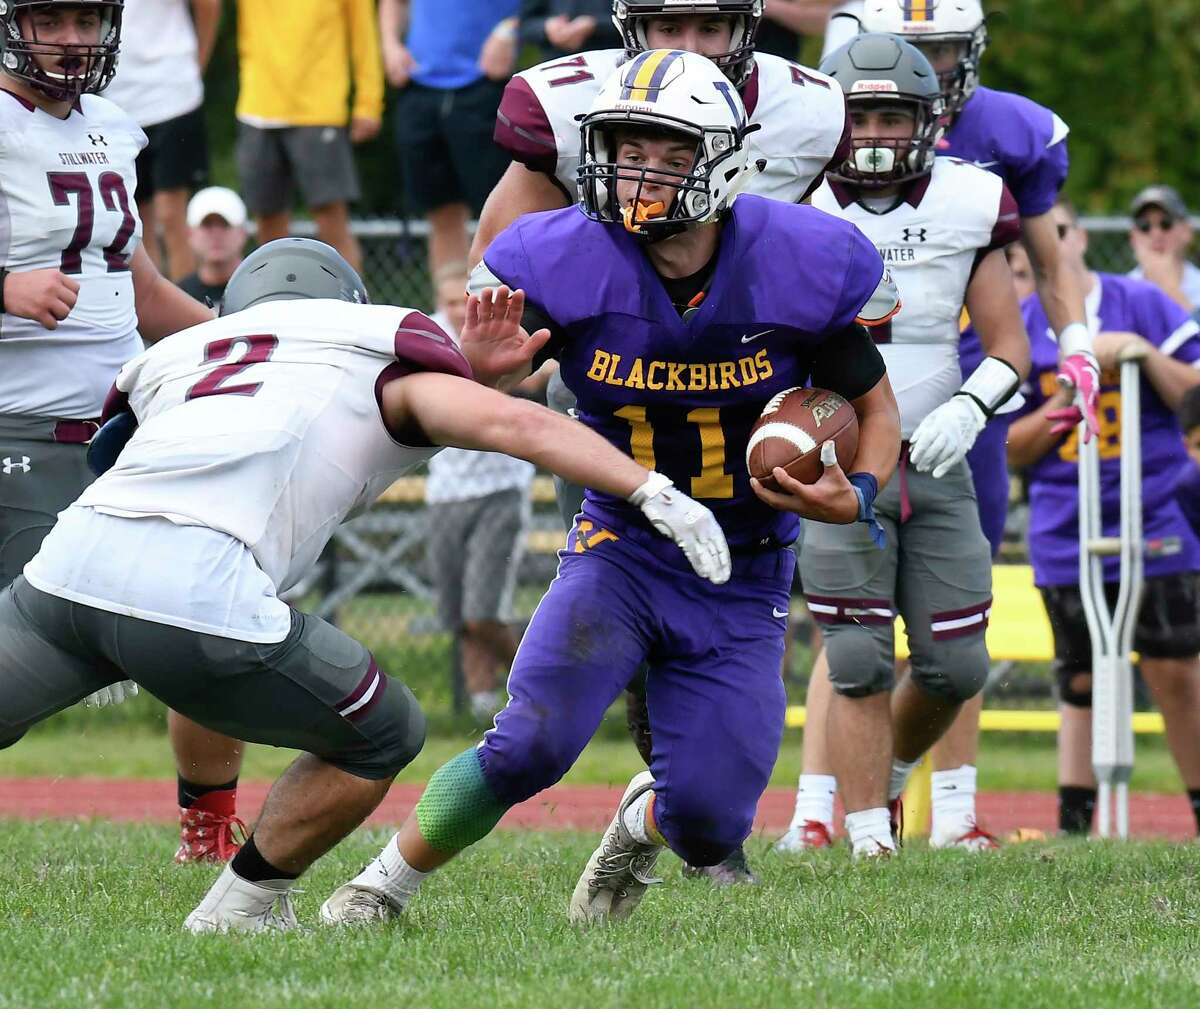 Photos from Week 1: Stillwater's Mason Seymour (2) defends against Voorheesville's Gavin Esposito (11) during the first half of a Section II High School football game Saturday, Sept. 7, 2019, in Voorheesville, N.Y. (Hans Pennink / Special to the Times Union)